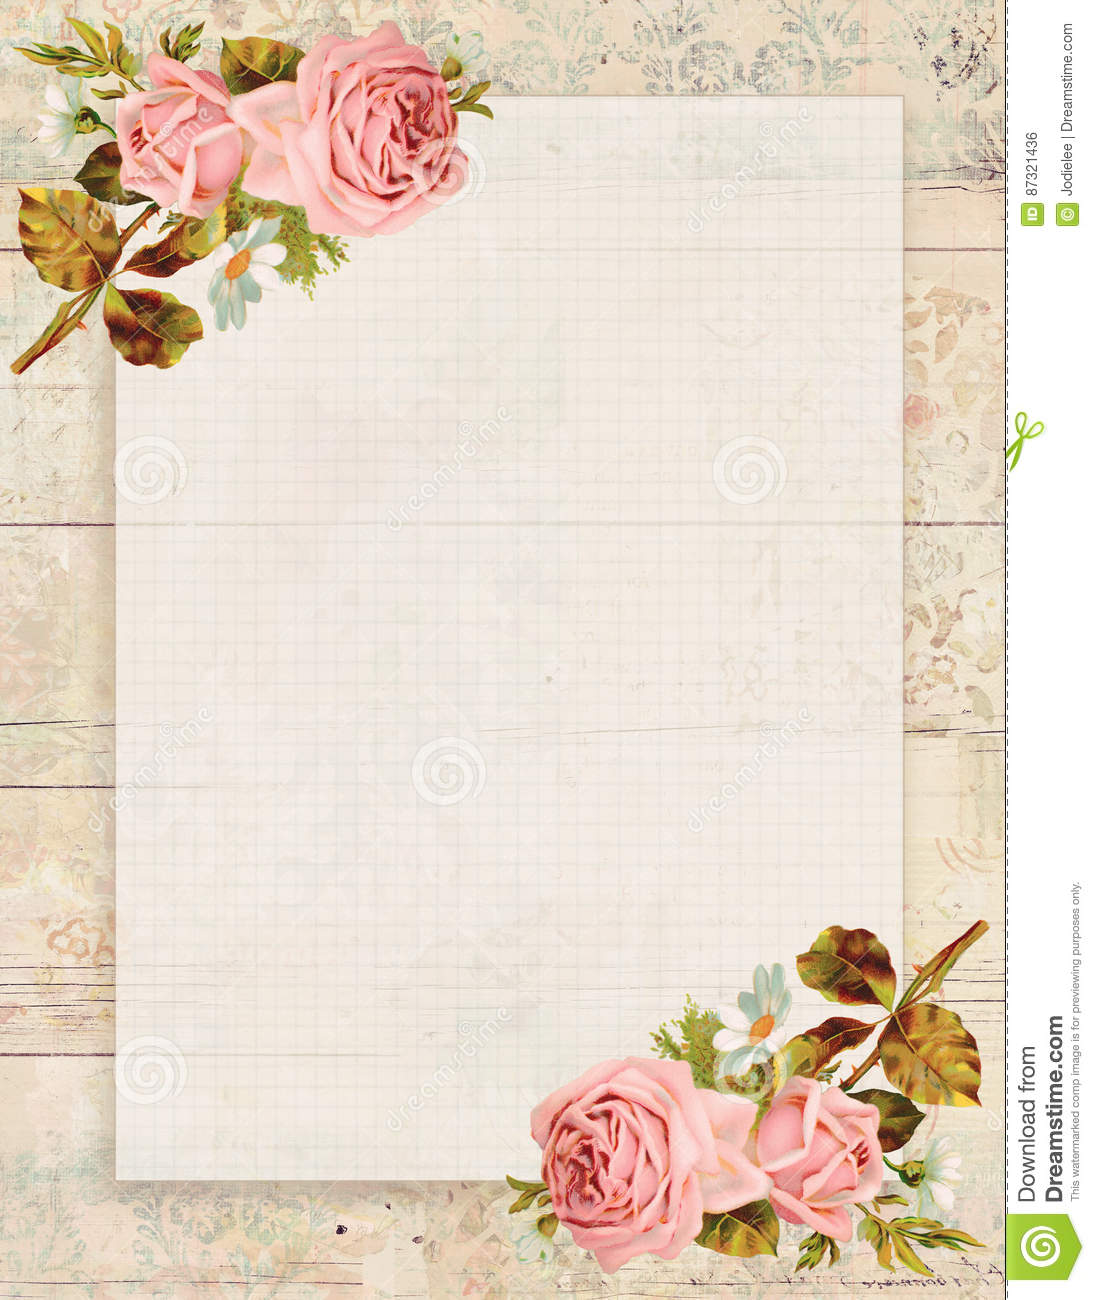 Printable vintage shabby chic style floral rose stationary - Papel de pared retro ...